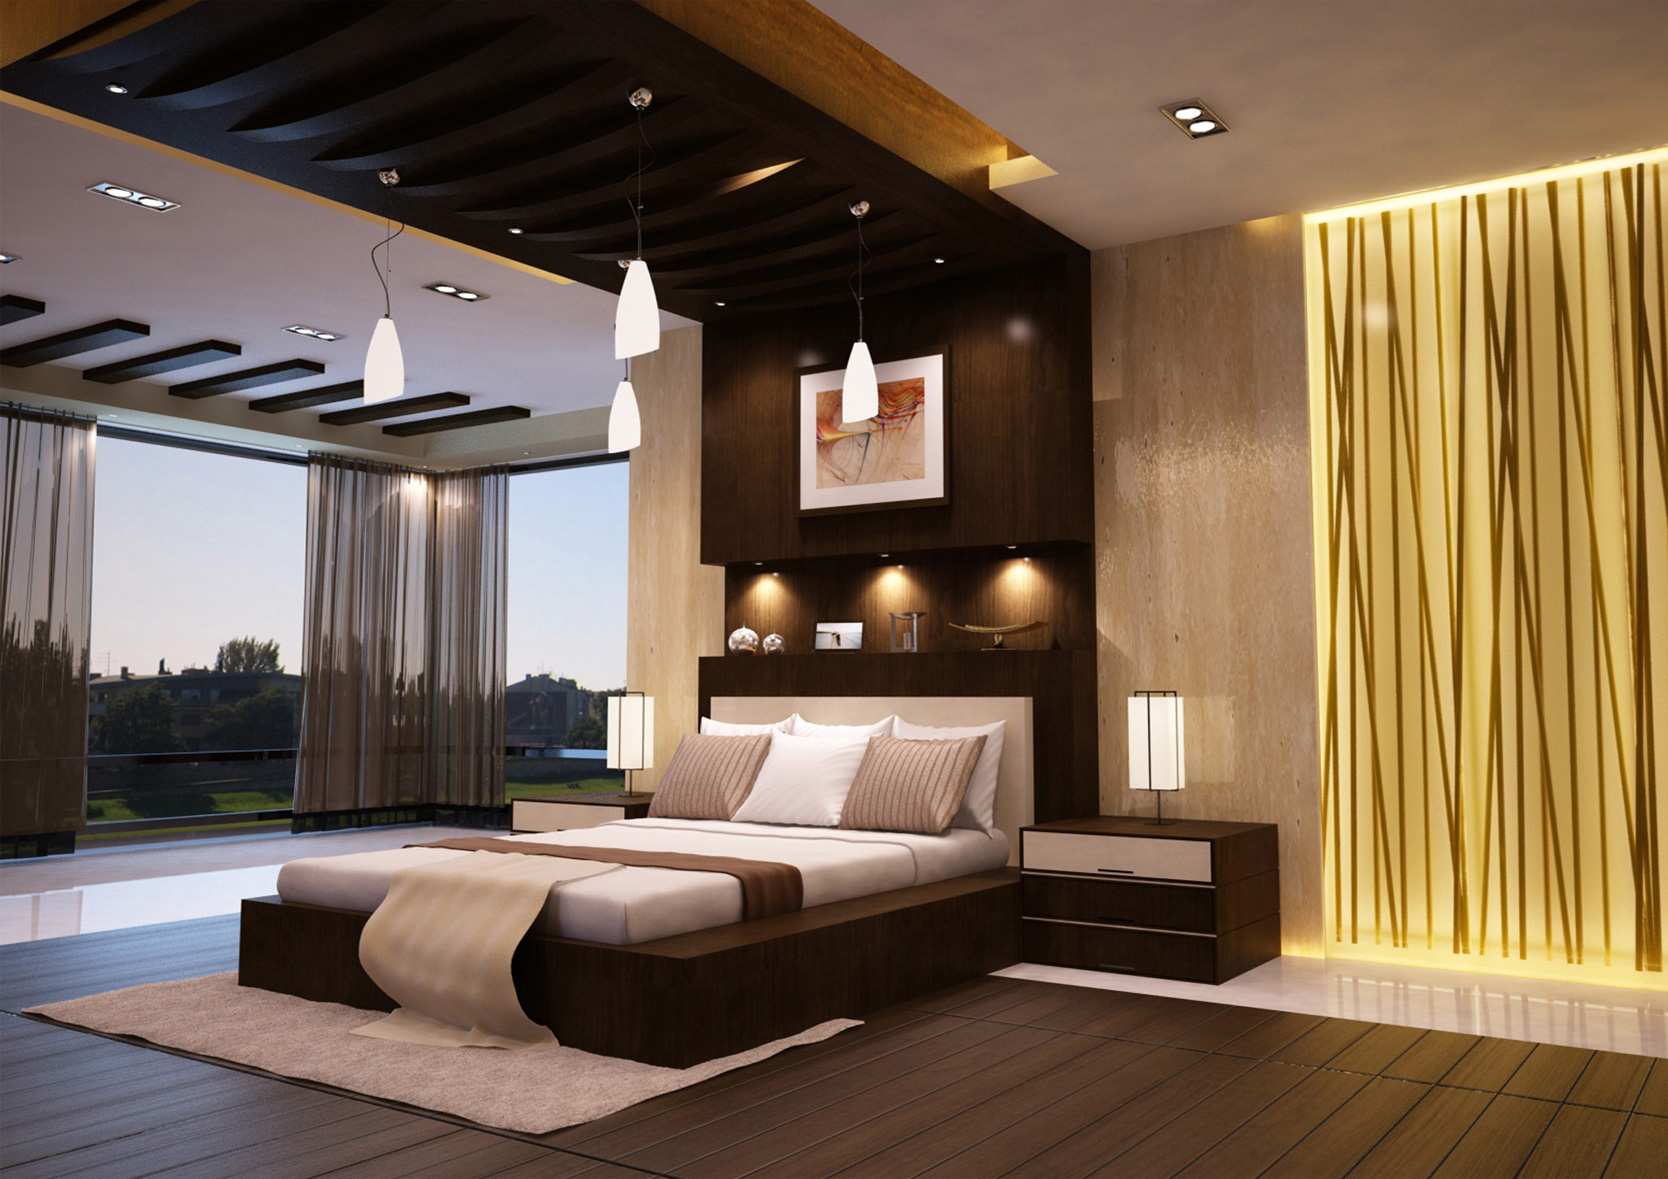 Villas - Bed Room View 2